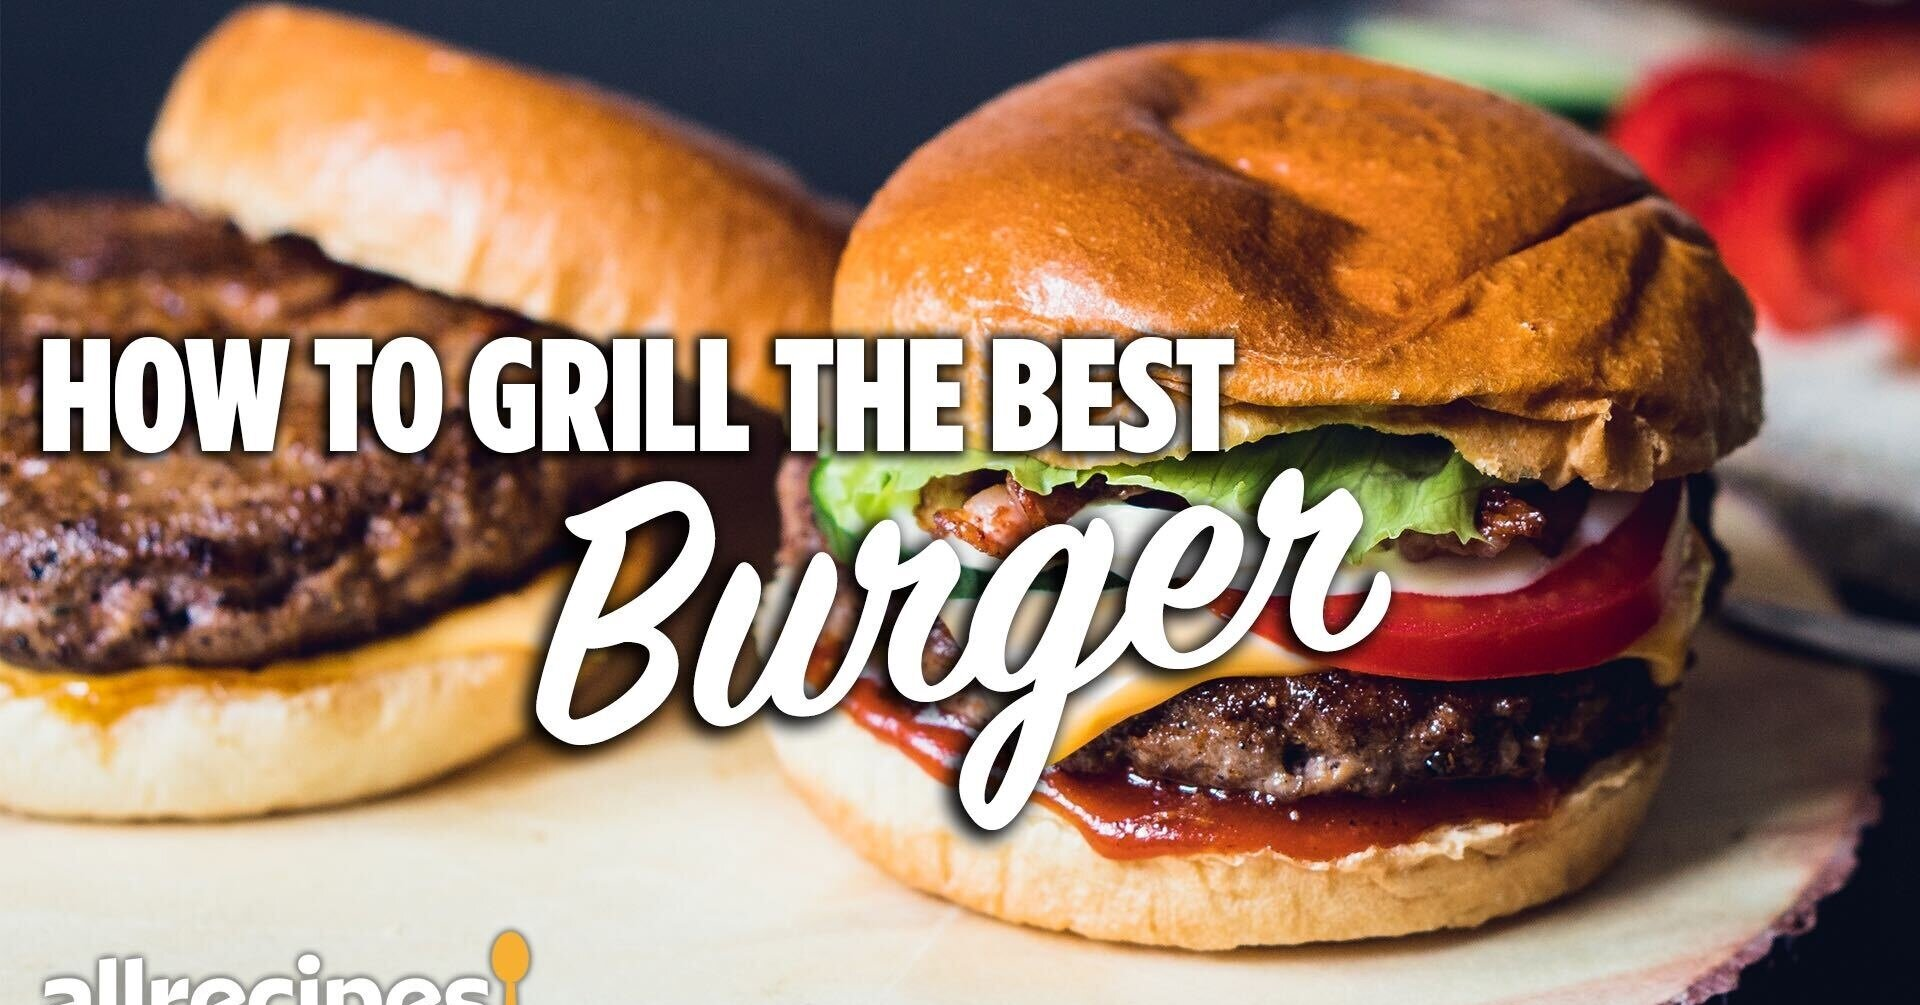 How To Grill The Best Burgers | Allrecipes